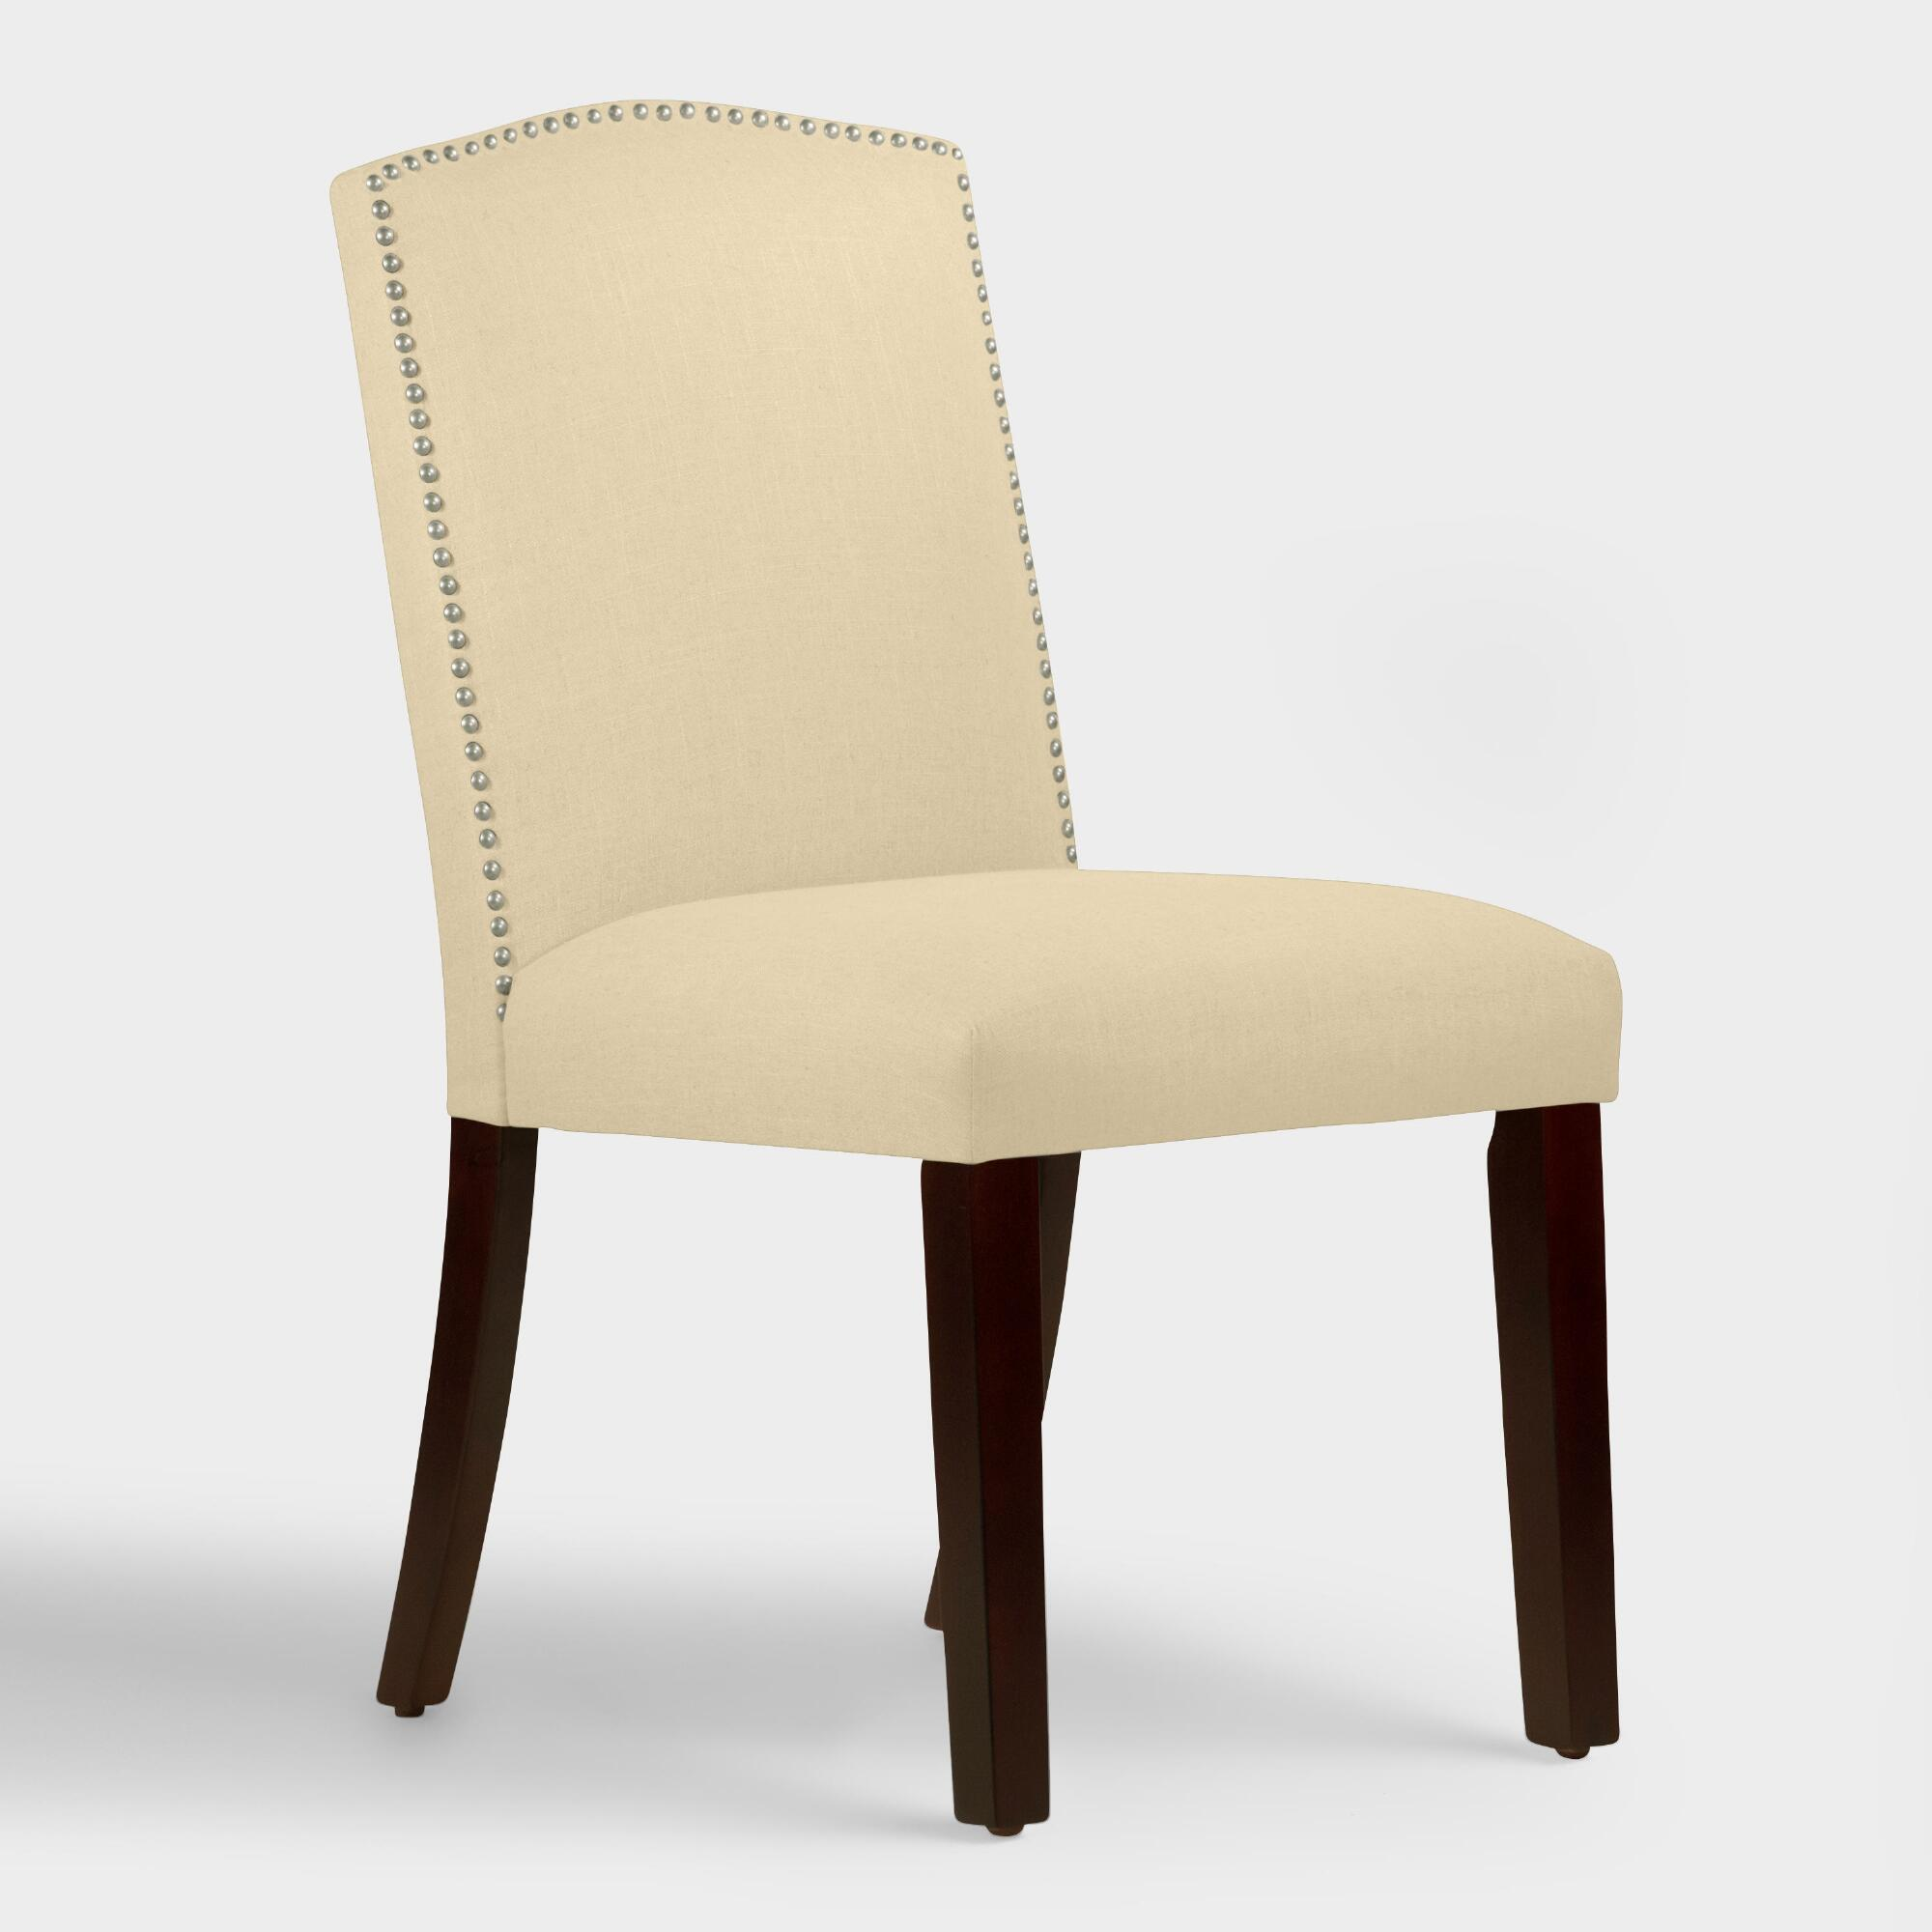 Linen abbie upholstered dining chair world market for Upholstered linen dining chairs